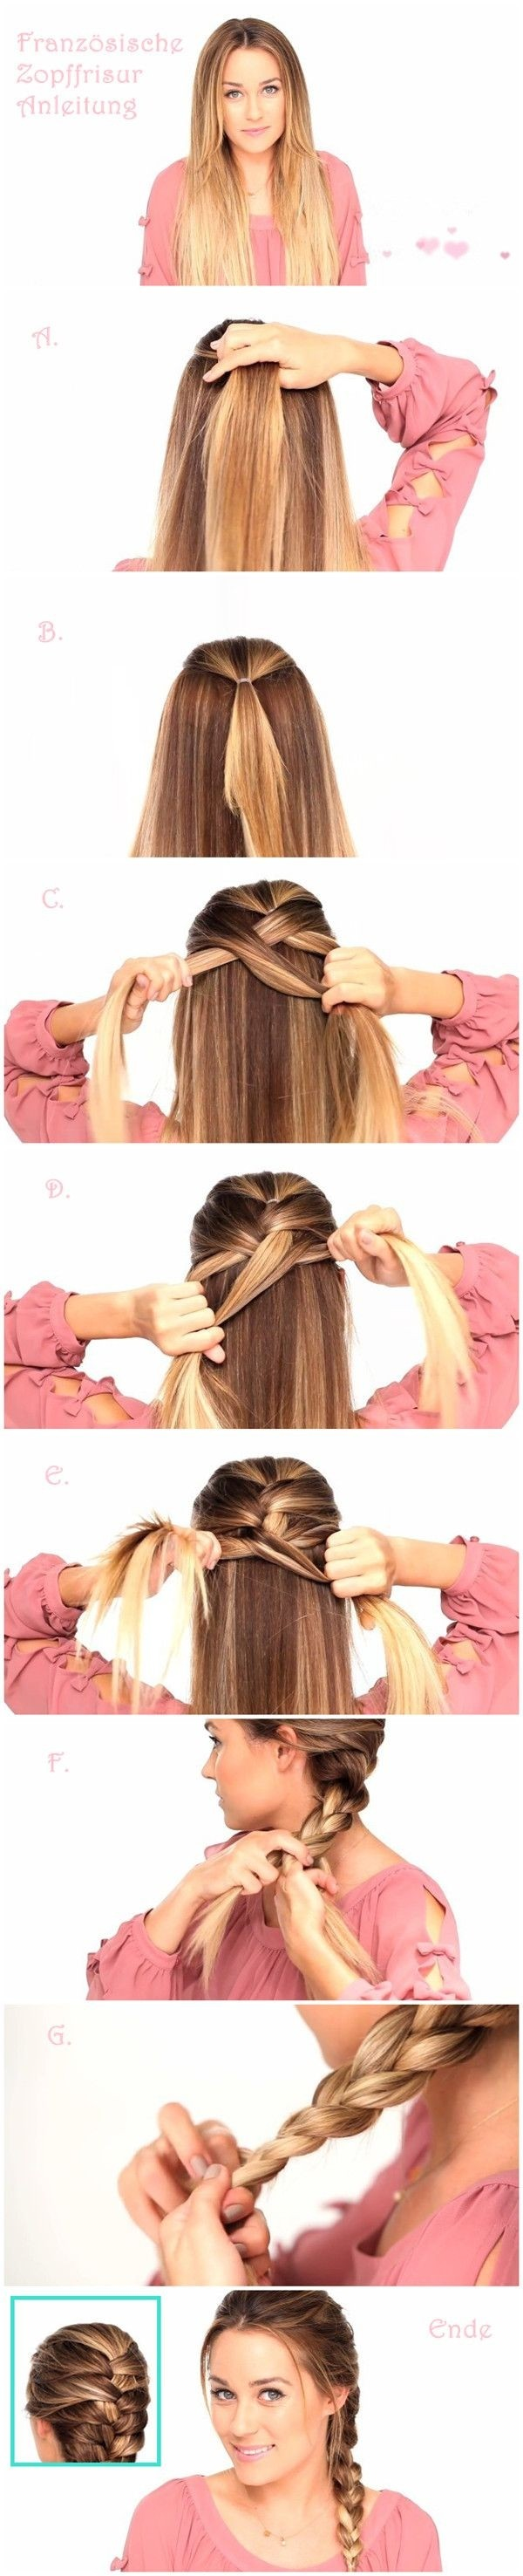 French braid hairstyle tutorial for long hair